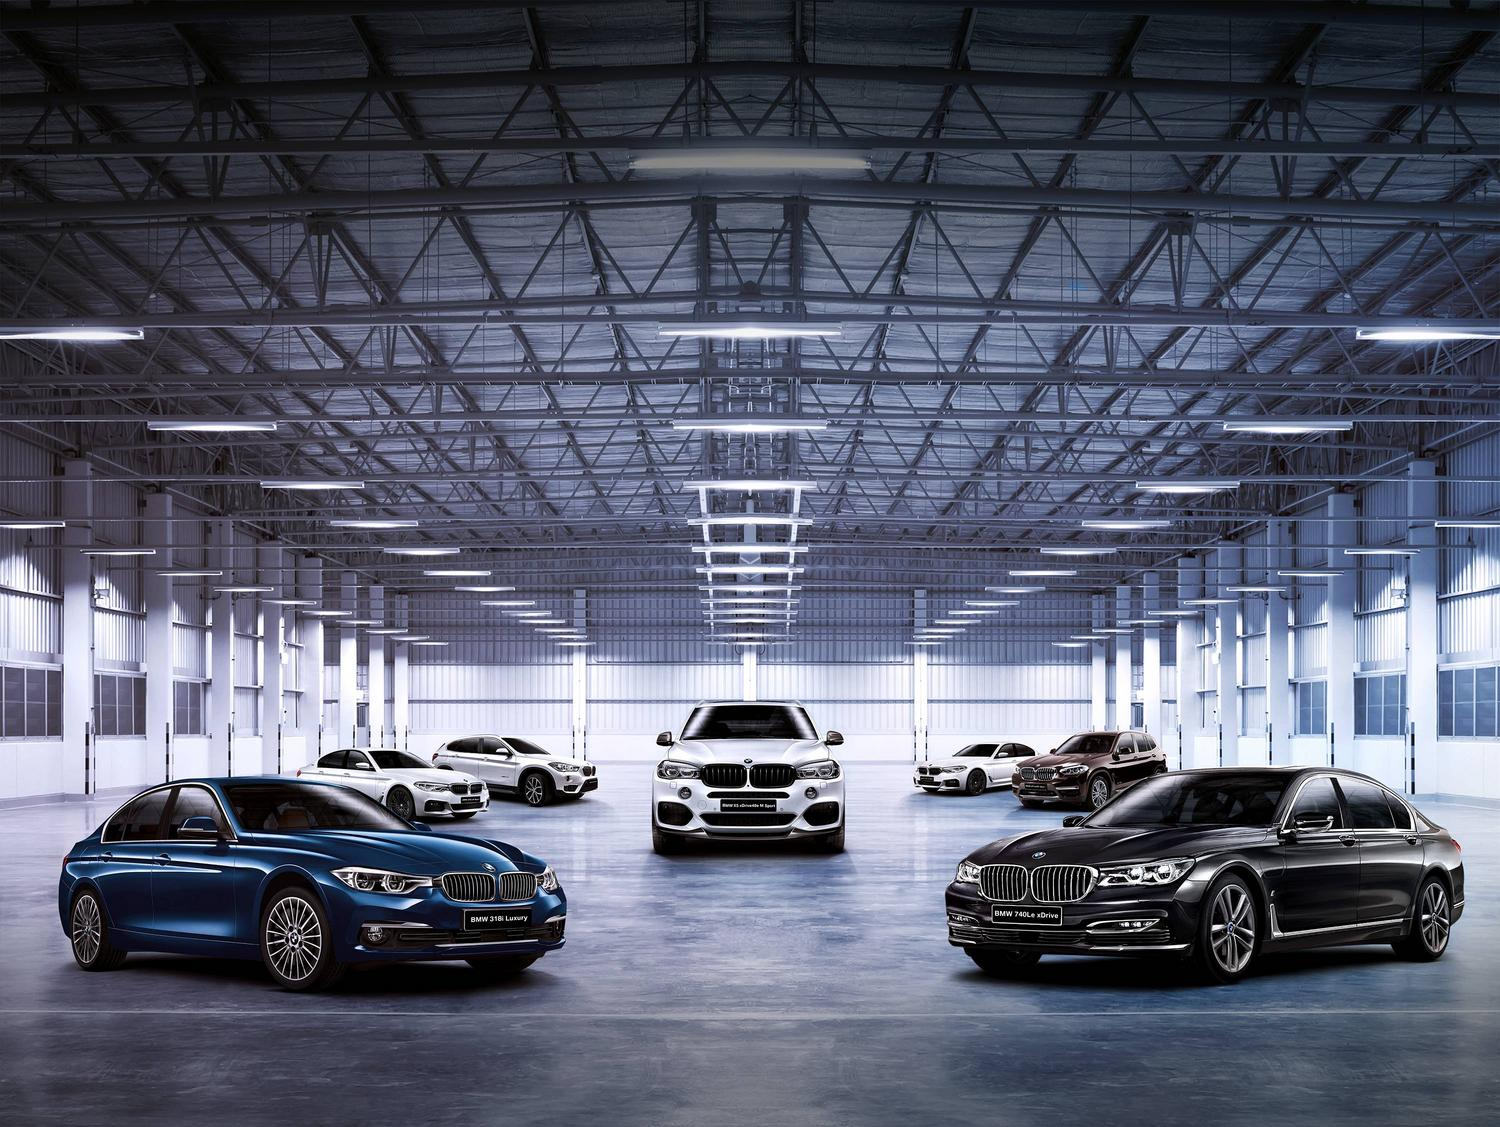 Image from BMW Malaysia